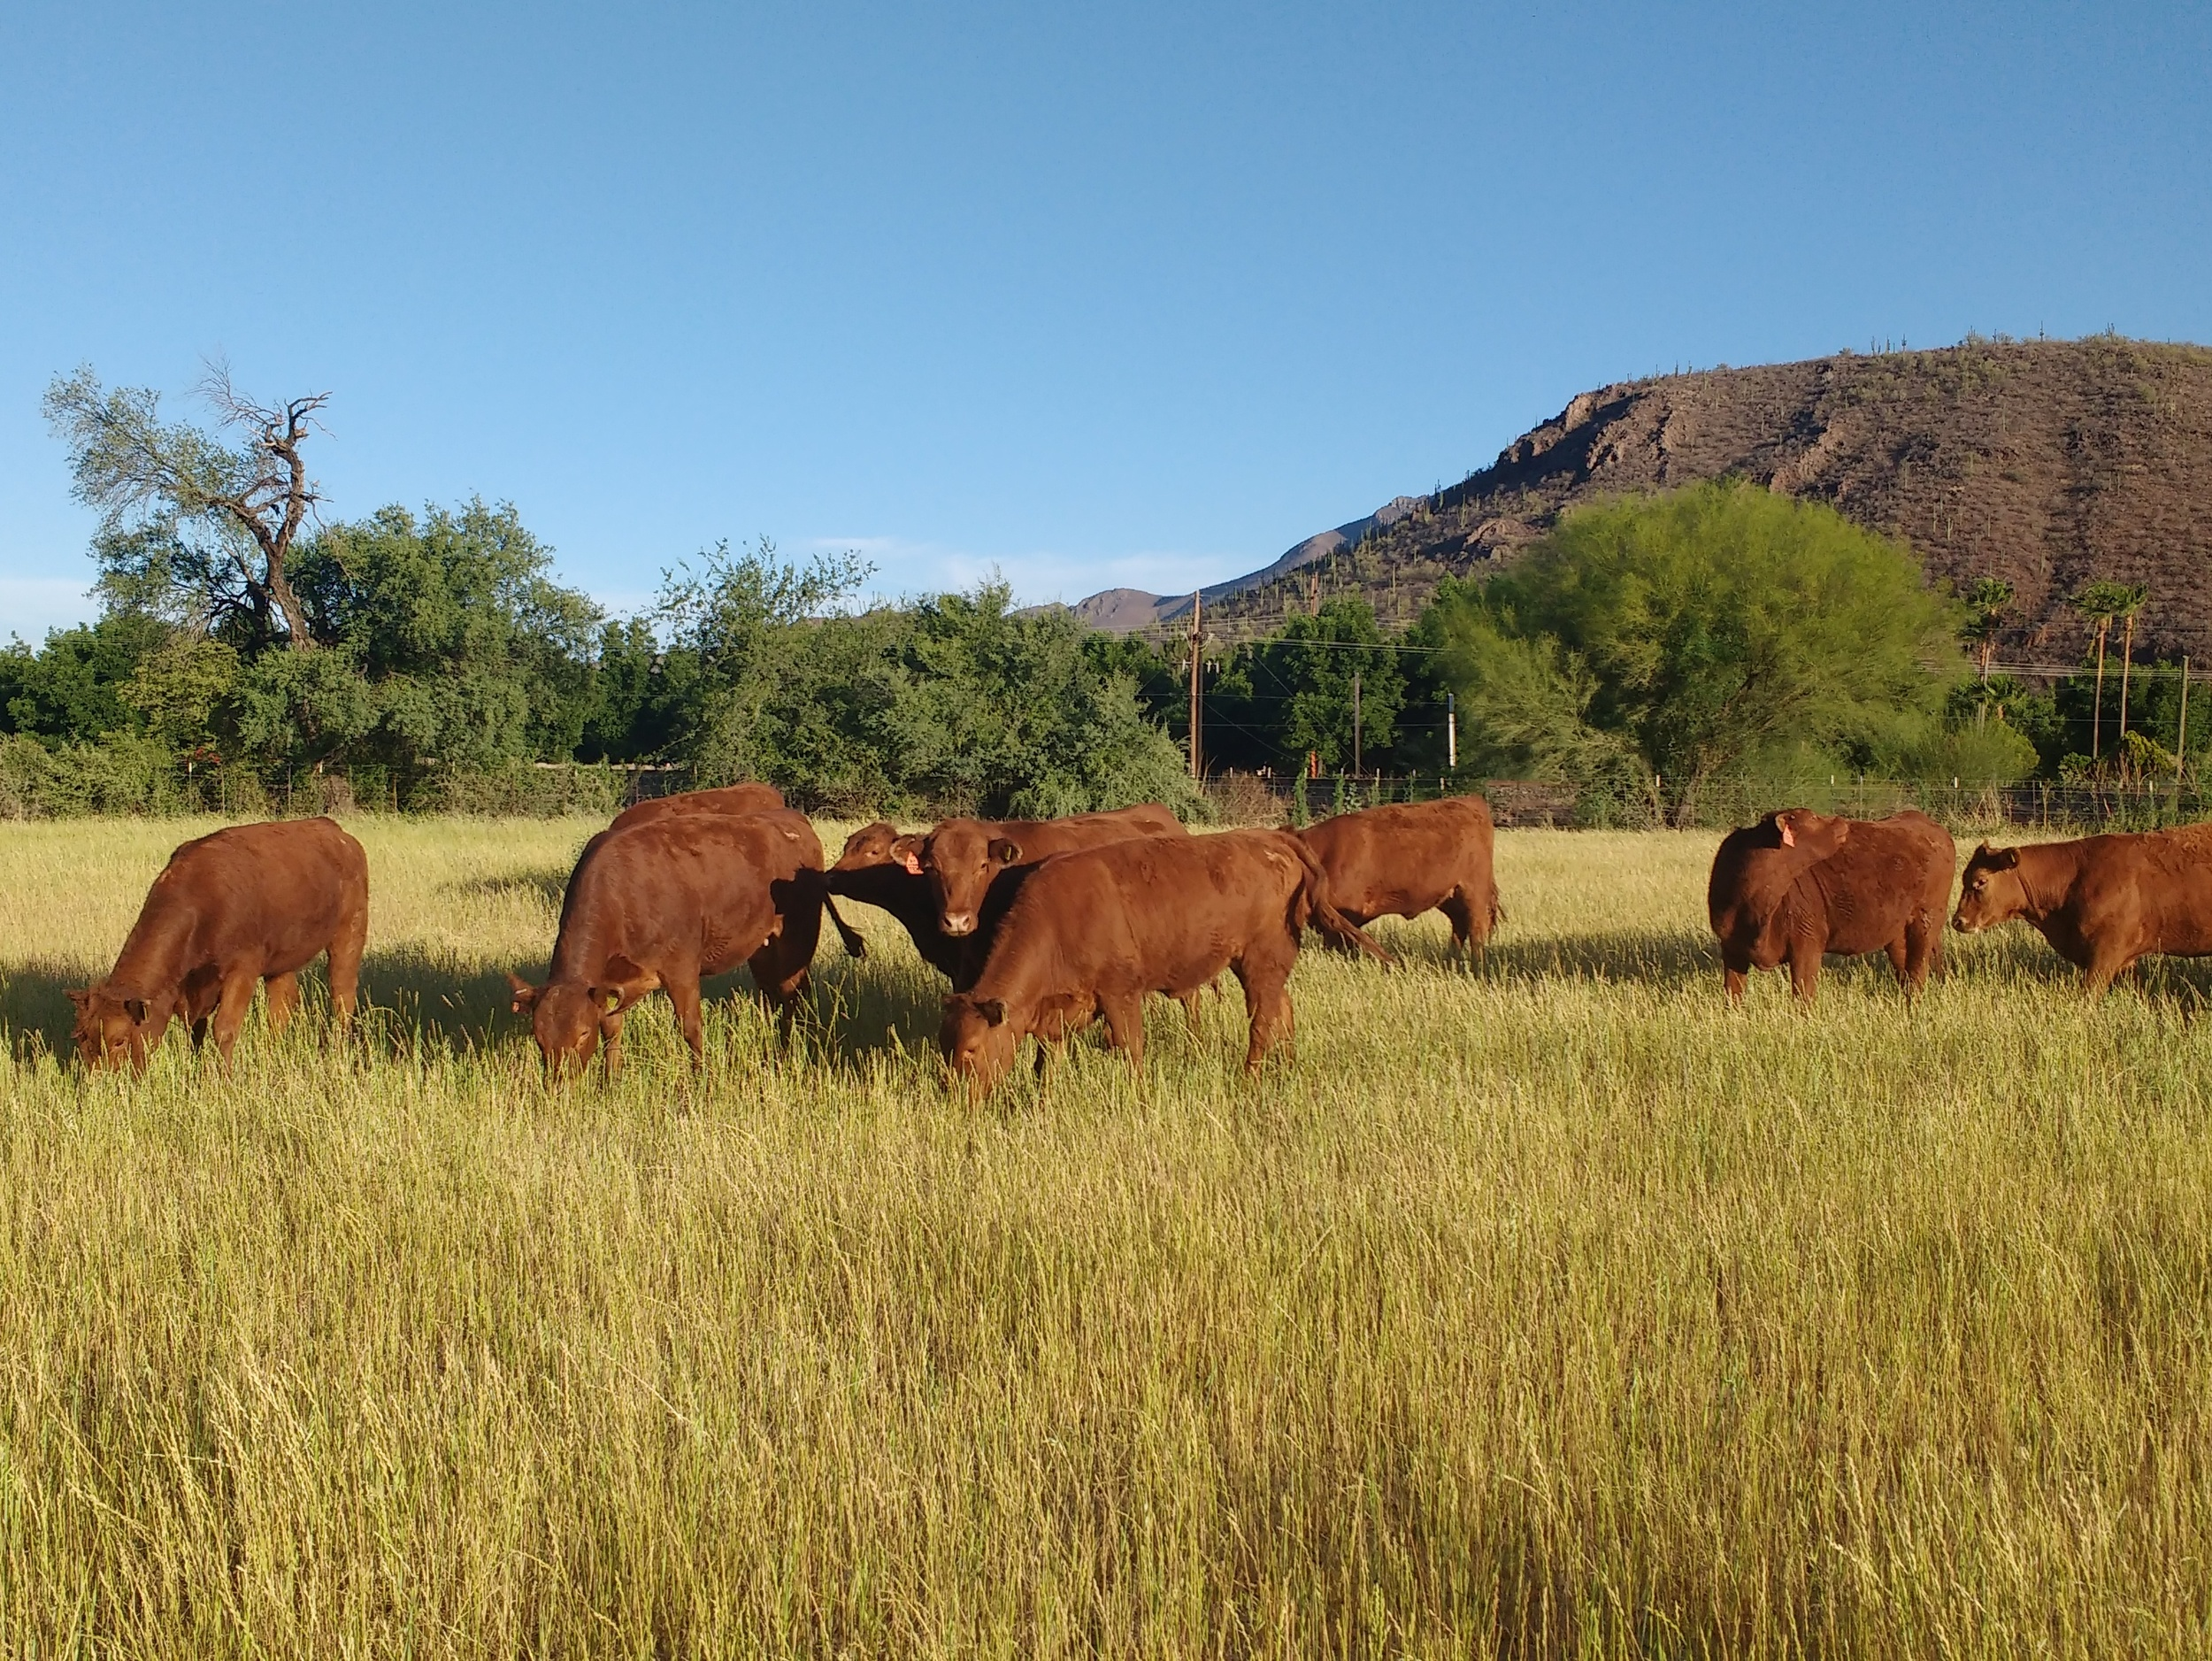 The females are corralled for the night and fed hay and pastured during the day to graze.